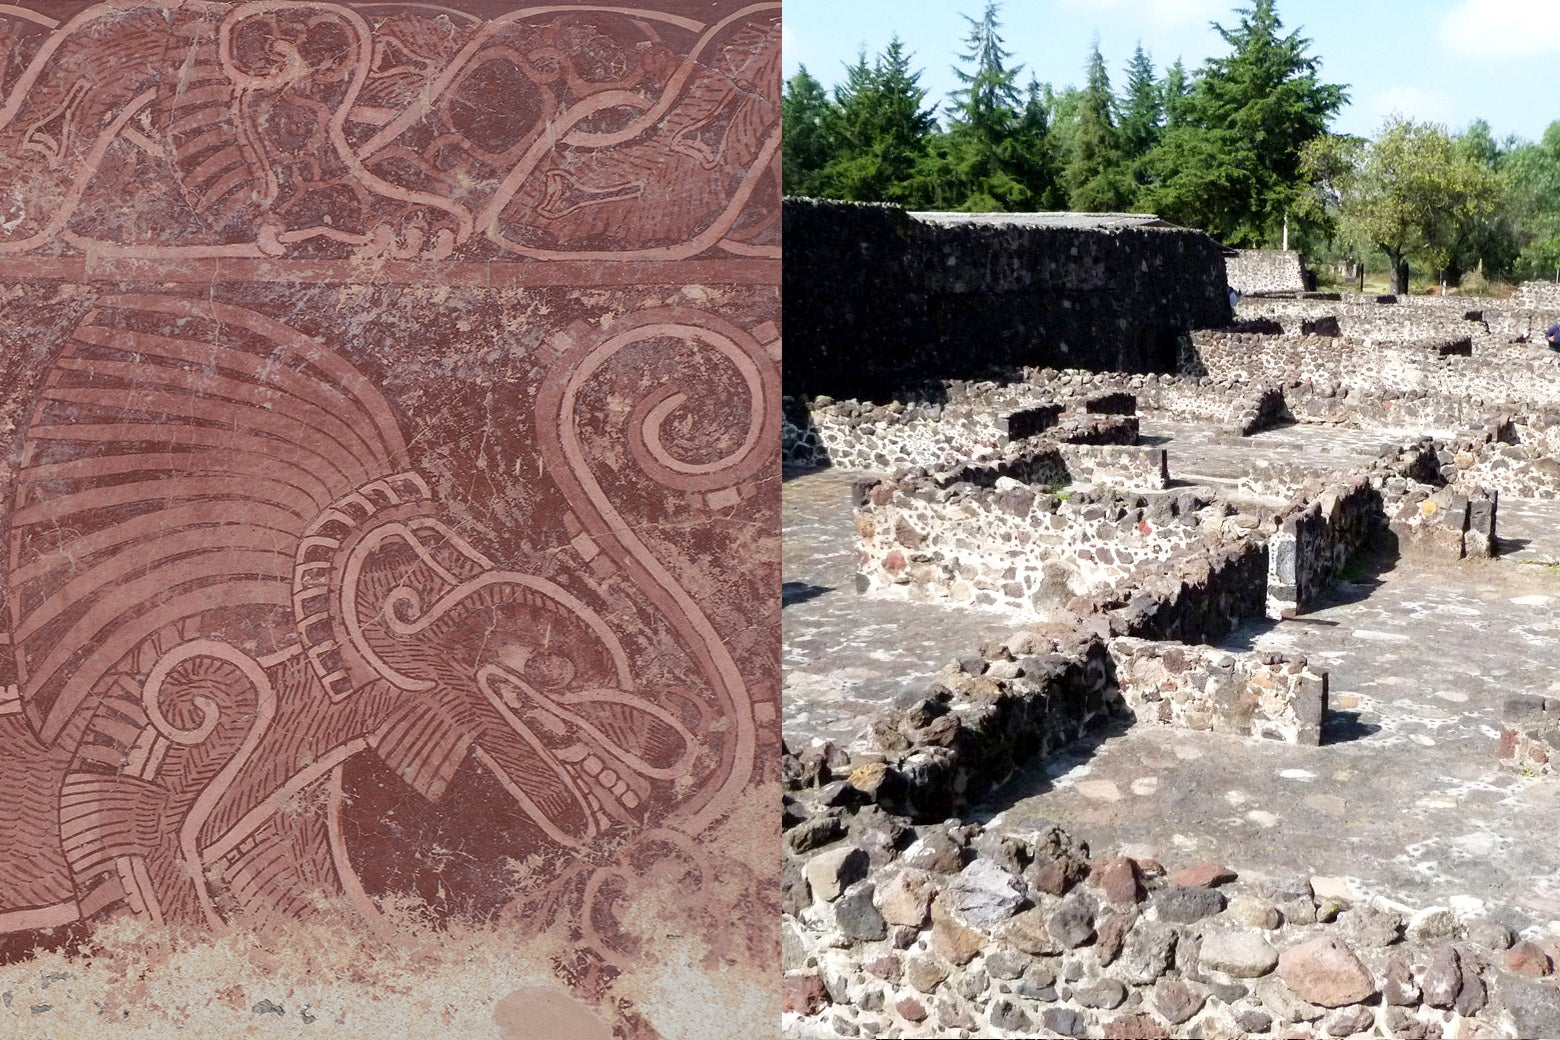 A fresco painting of a jaguar from the residential compound known as Atetelco. Paintings like this decorated the walls of most of the houses of Teotihuacán. Living quarters in the residential compound known as Tetitla. These large rooms and spaces are typical of the dwellings of the majority of the people at Teotihuacán.